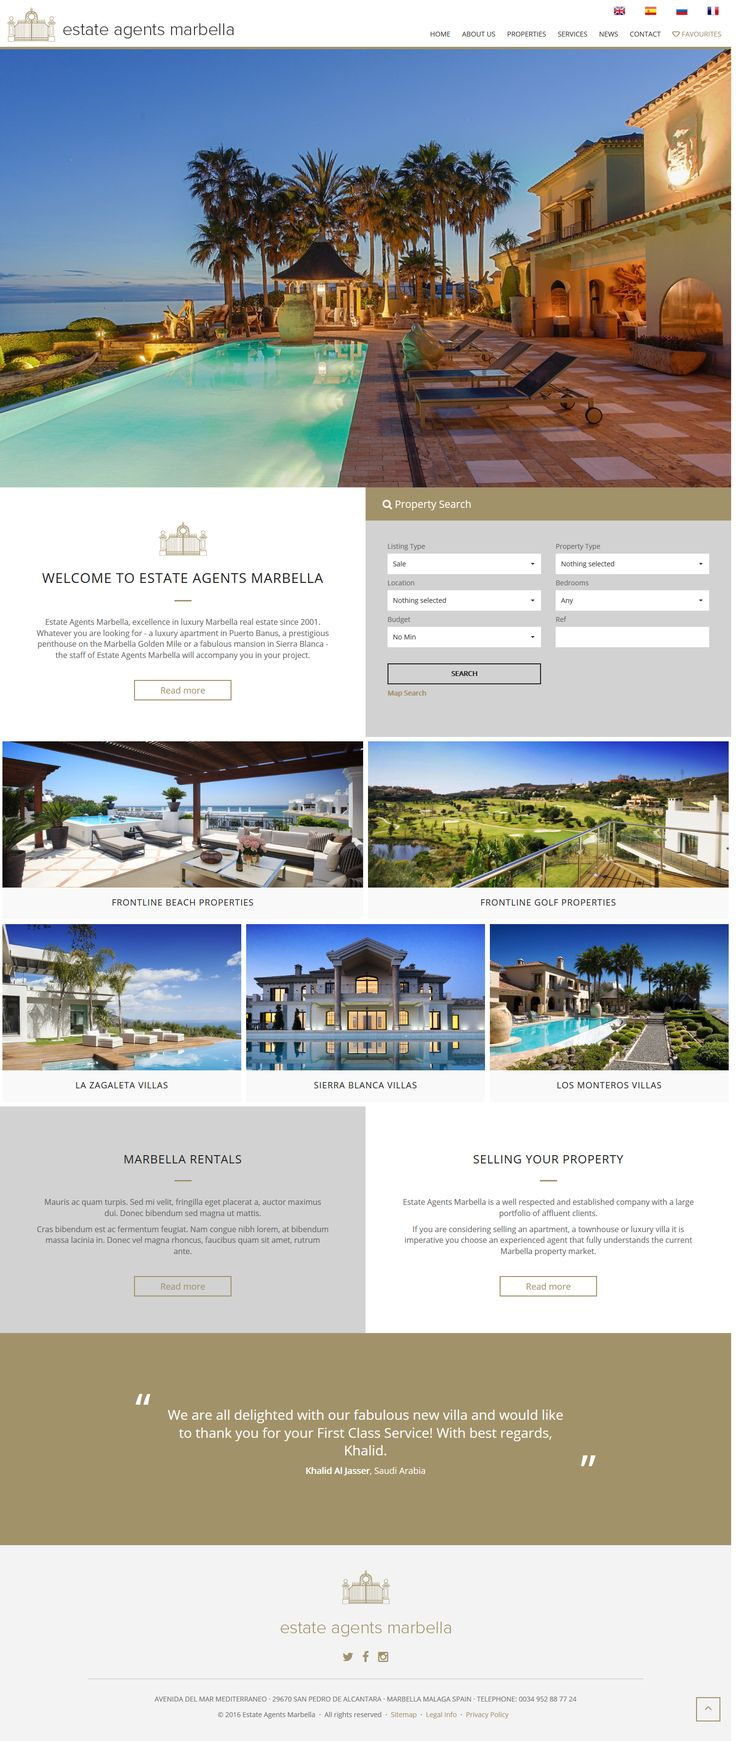 Estate Agents Marbella, excellence in luxury Marbella real estate since 2001. Whatever you are looking for - a luxury apartment in Puerto Banus, a prestigious penthouse on the Marbella Golden Mile or a fabulous mansion in Sierra Blanca - the staff of Estate Agents Marbella will accompany you in your project. #RealEstate #Marbella #qresXML #ResalesOnline